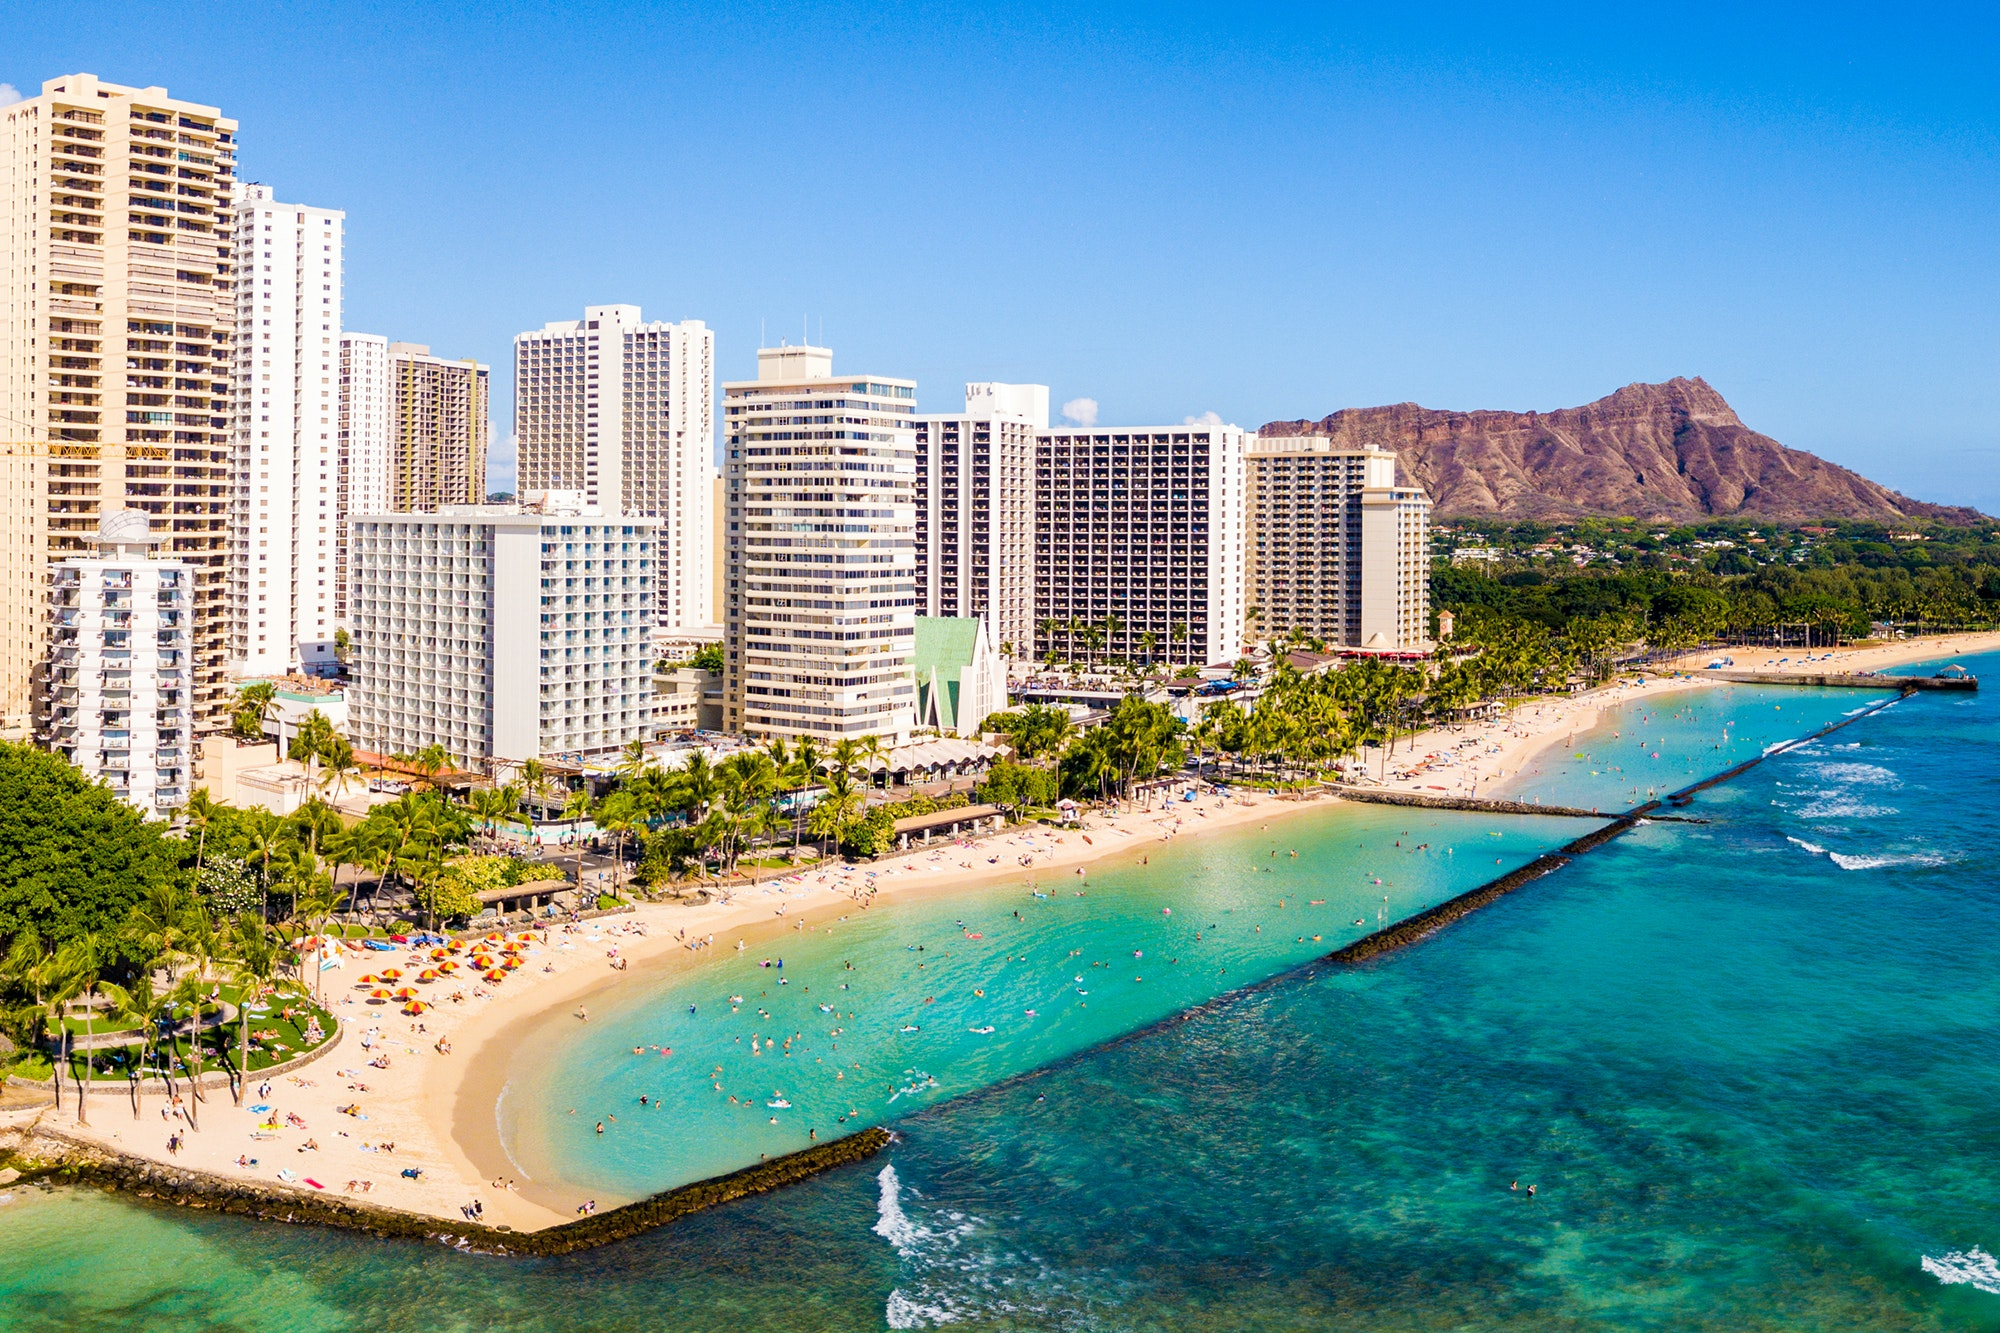 Many of Waikiki's beach hotels are going through major renovations.